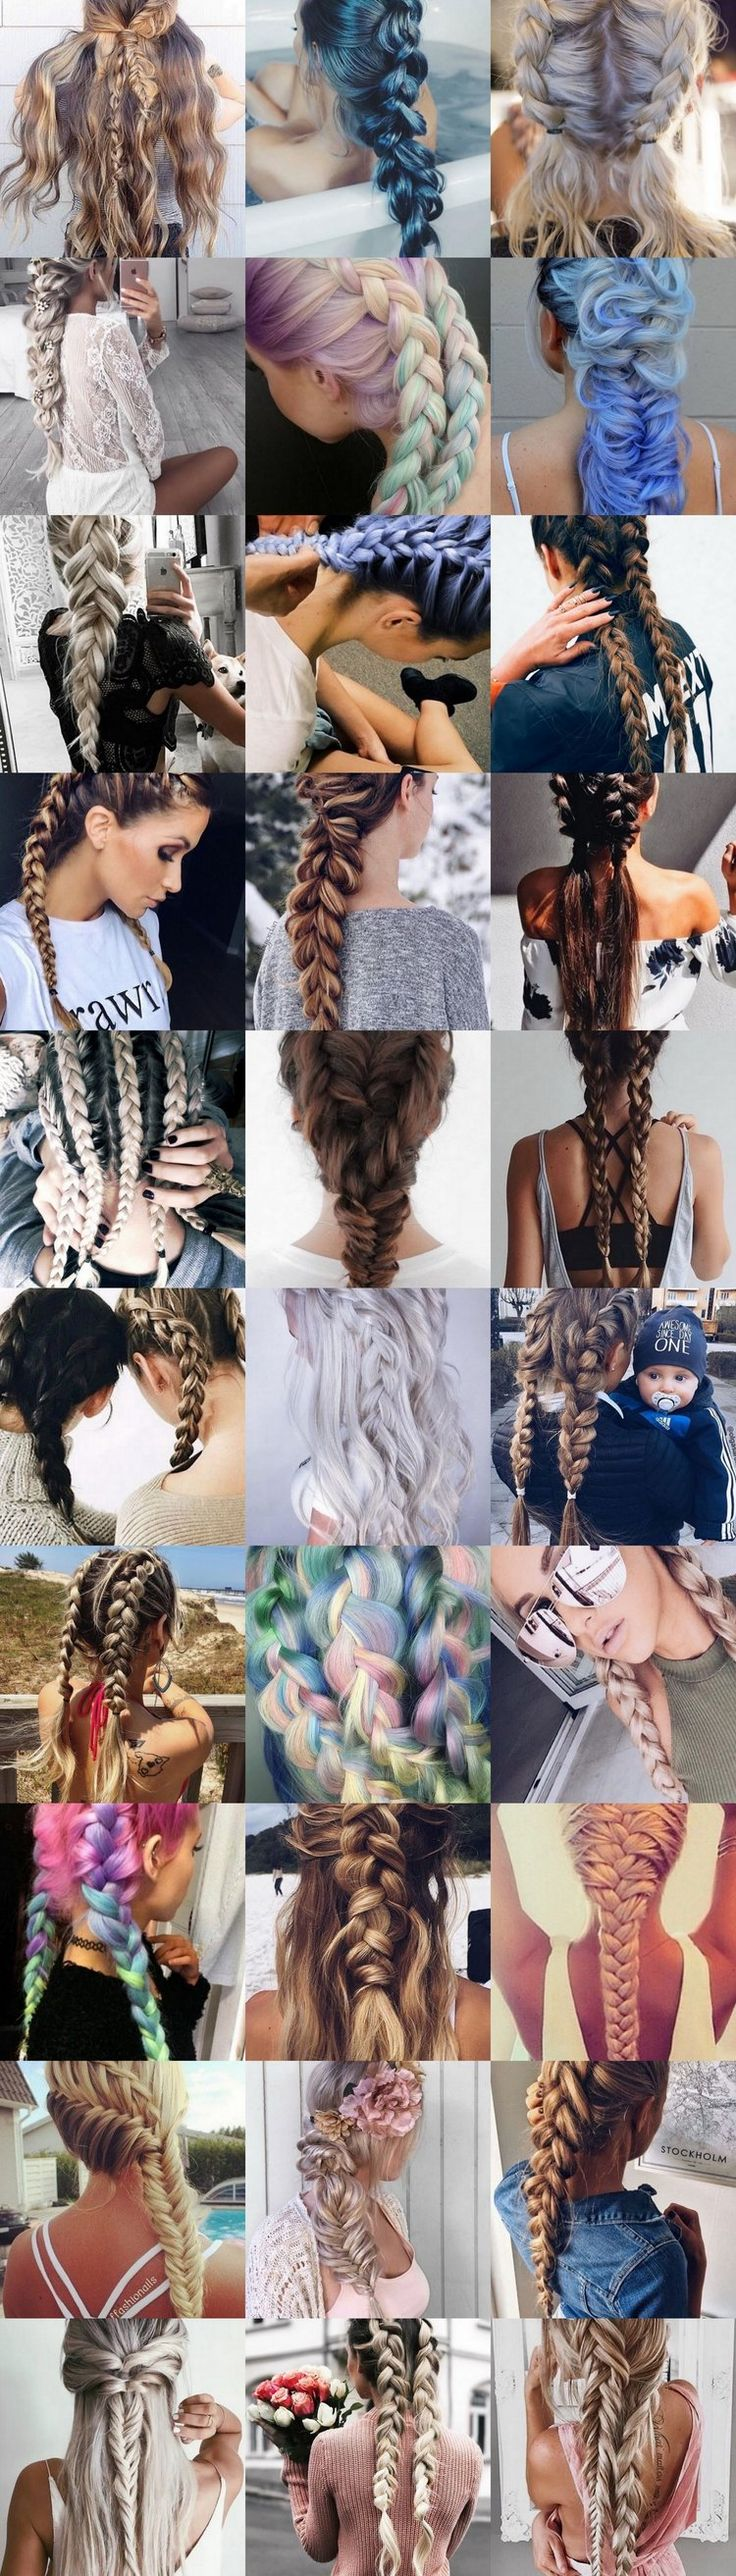 101 Braided Hairstyles #braids #hair #hairstyle